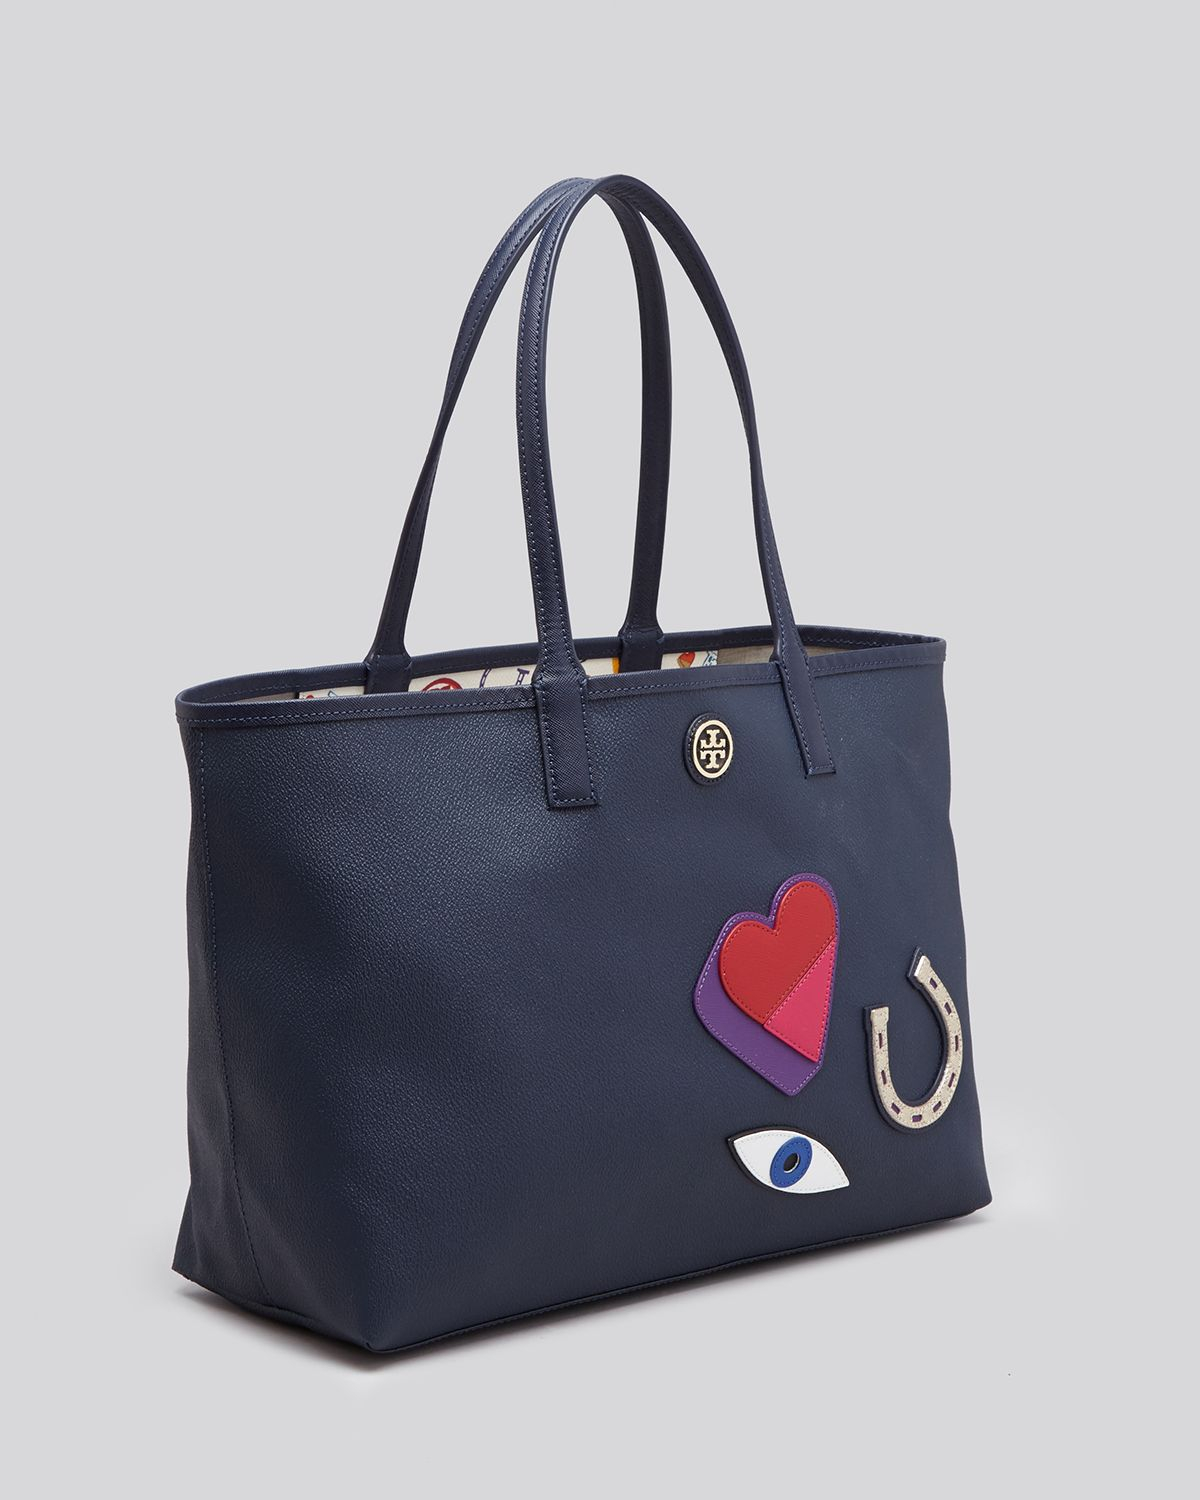 a2d1ccecb06 Lyst - Tory Burch Tote - Kerrington Applique Shopper in Blue